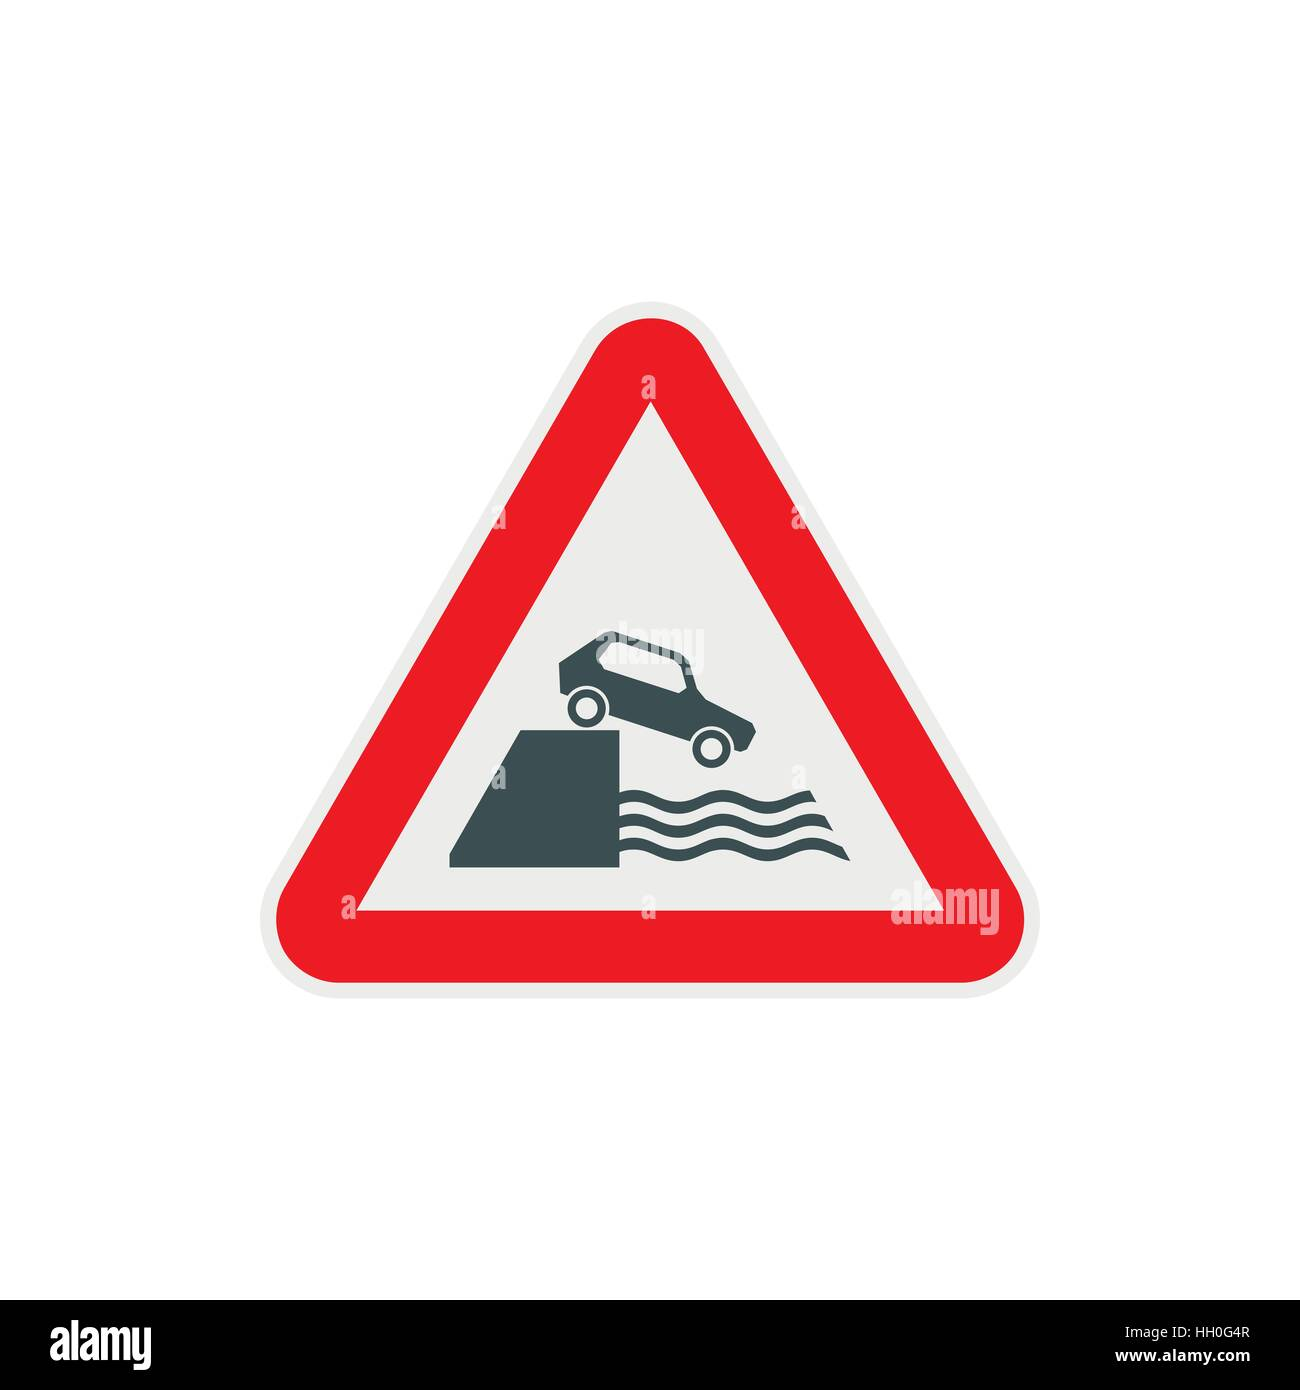 Riverbank traffic sign icon, flat style - Stock Image